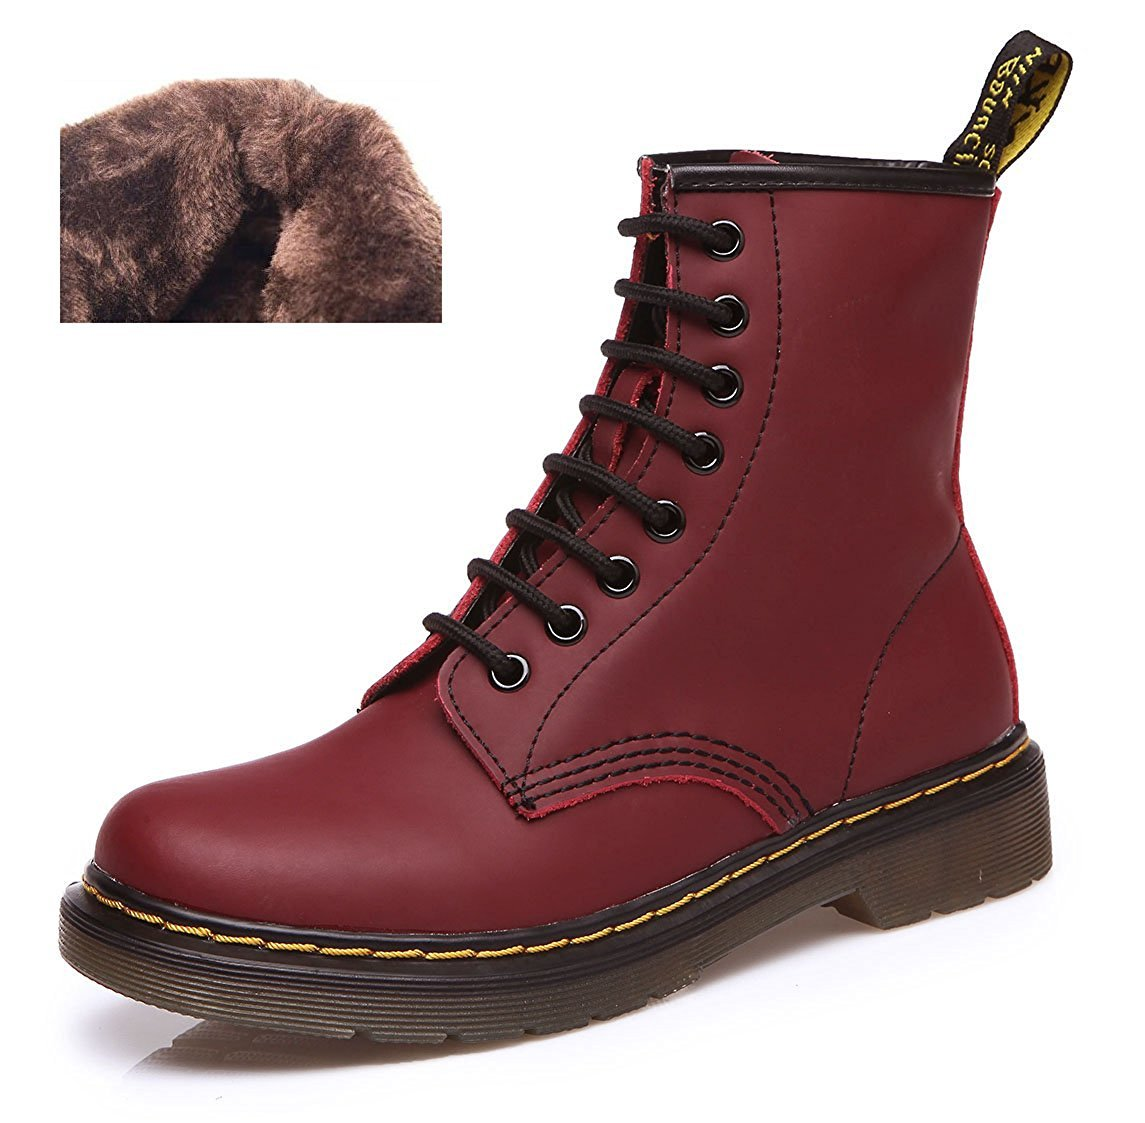 Modemoven Women's Round Toe Lase-up Ankle Boots Ladies Leather Combat Booties Fashion Martens Boots Velvet Cherry Red US7